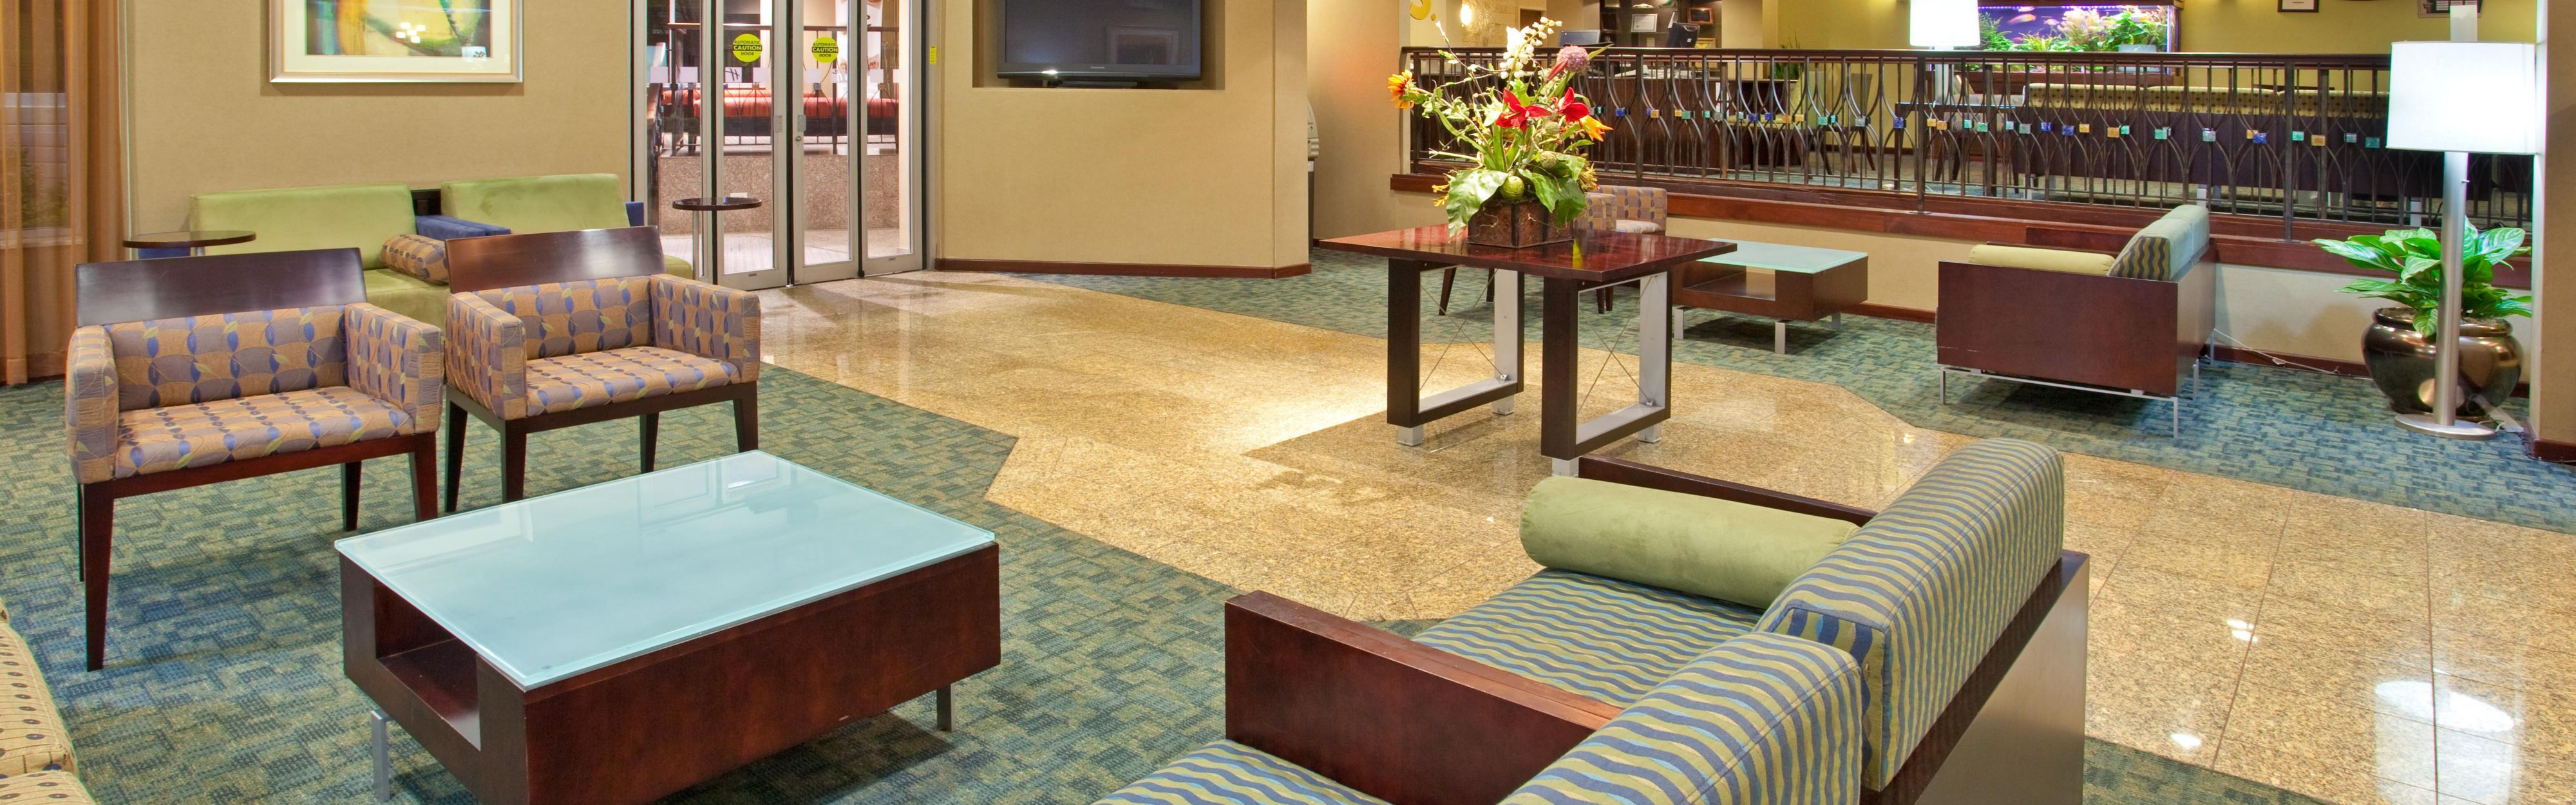 Hotels Near Wheaton Il Simple Emby Suites By Hilton Chicago